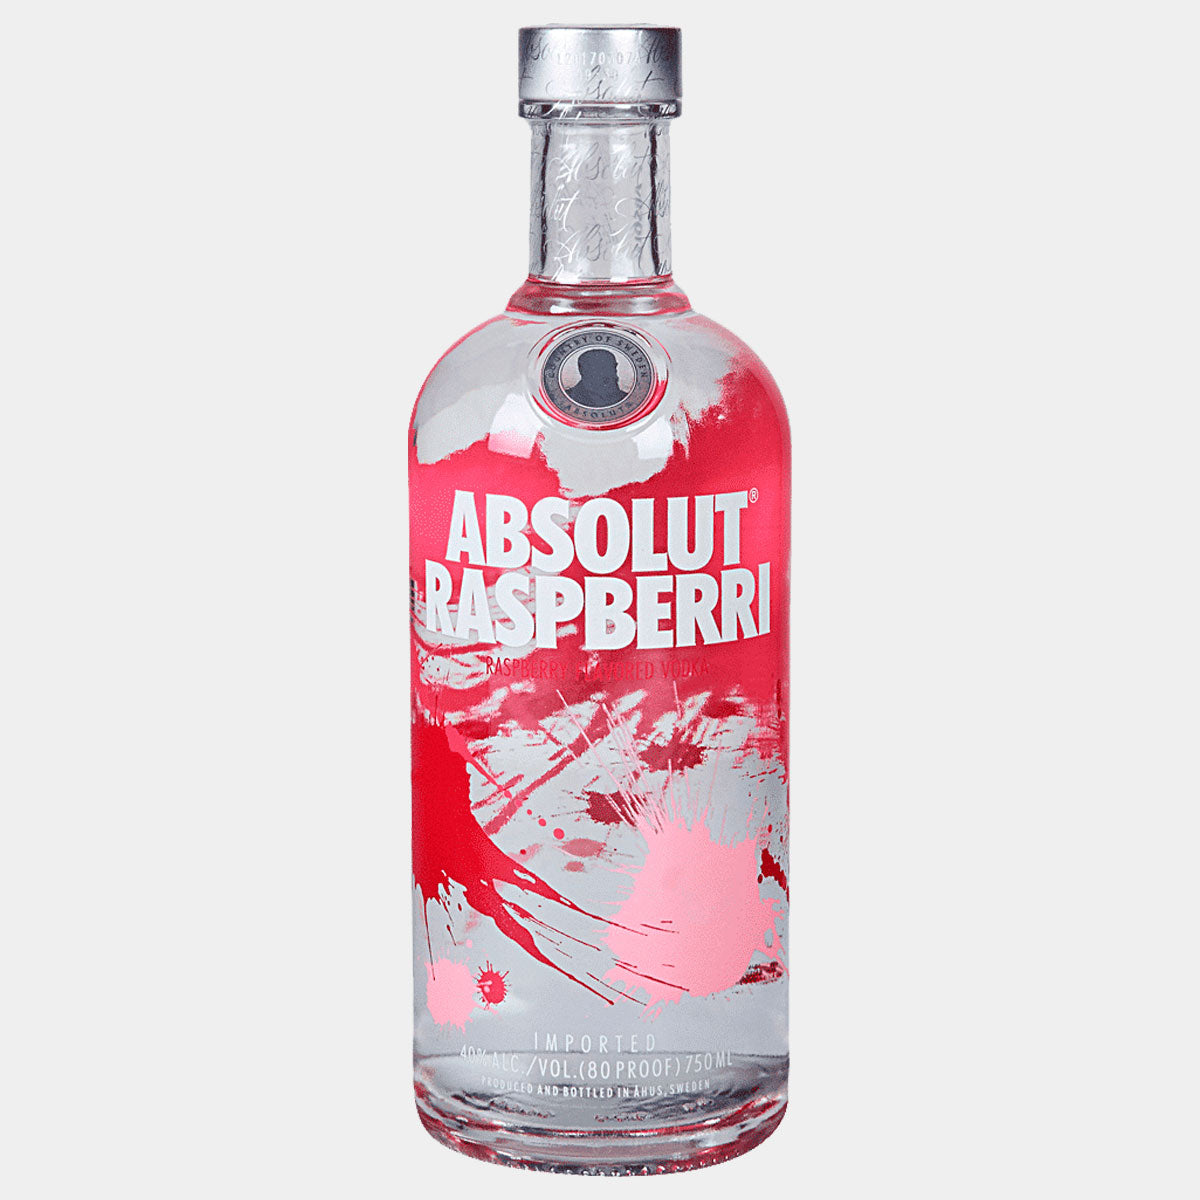 Vodka Absolut Raspberri - Wines and Copas Barcelona